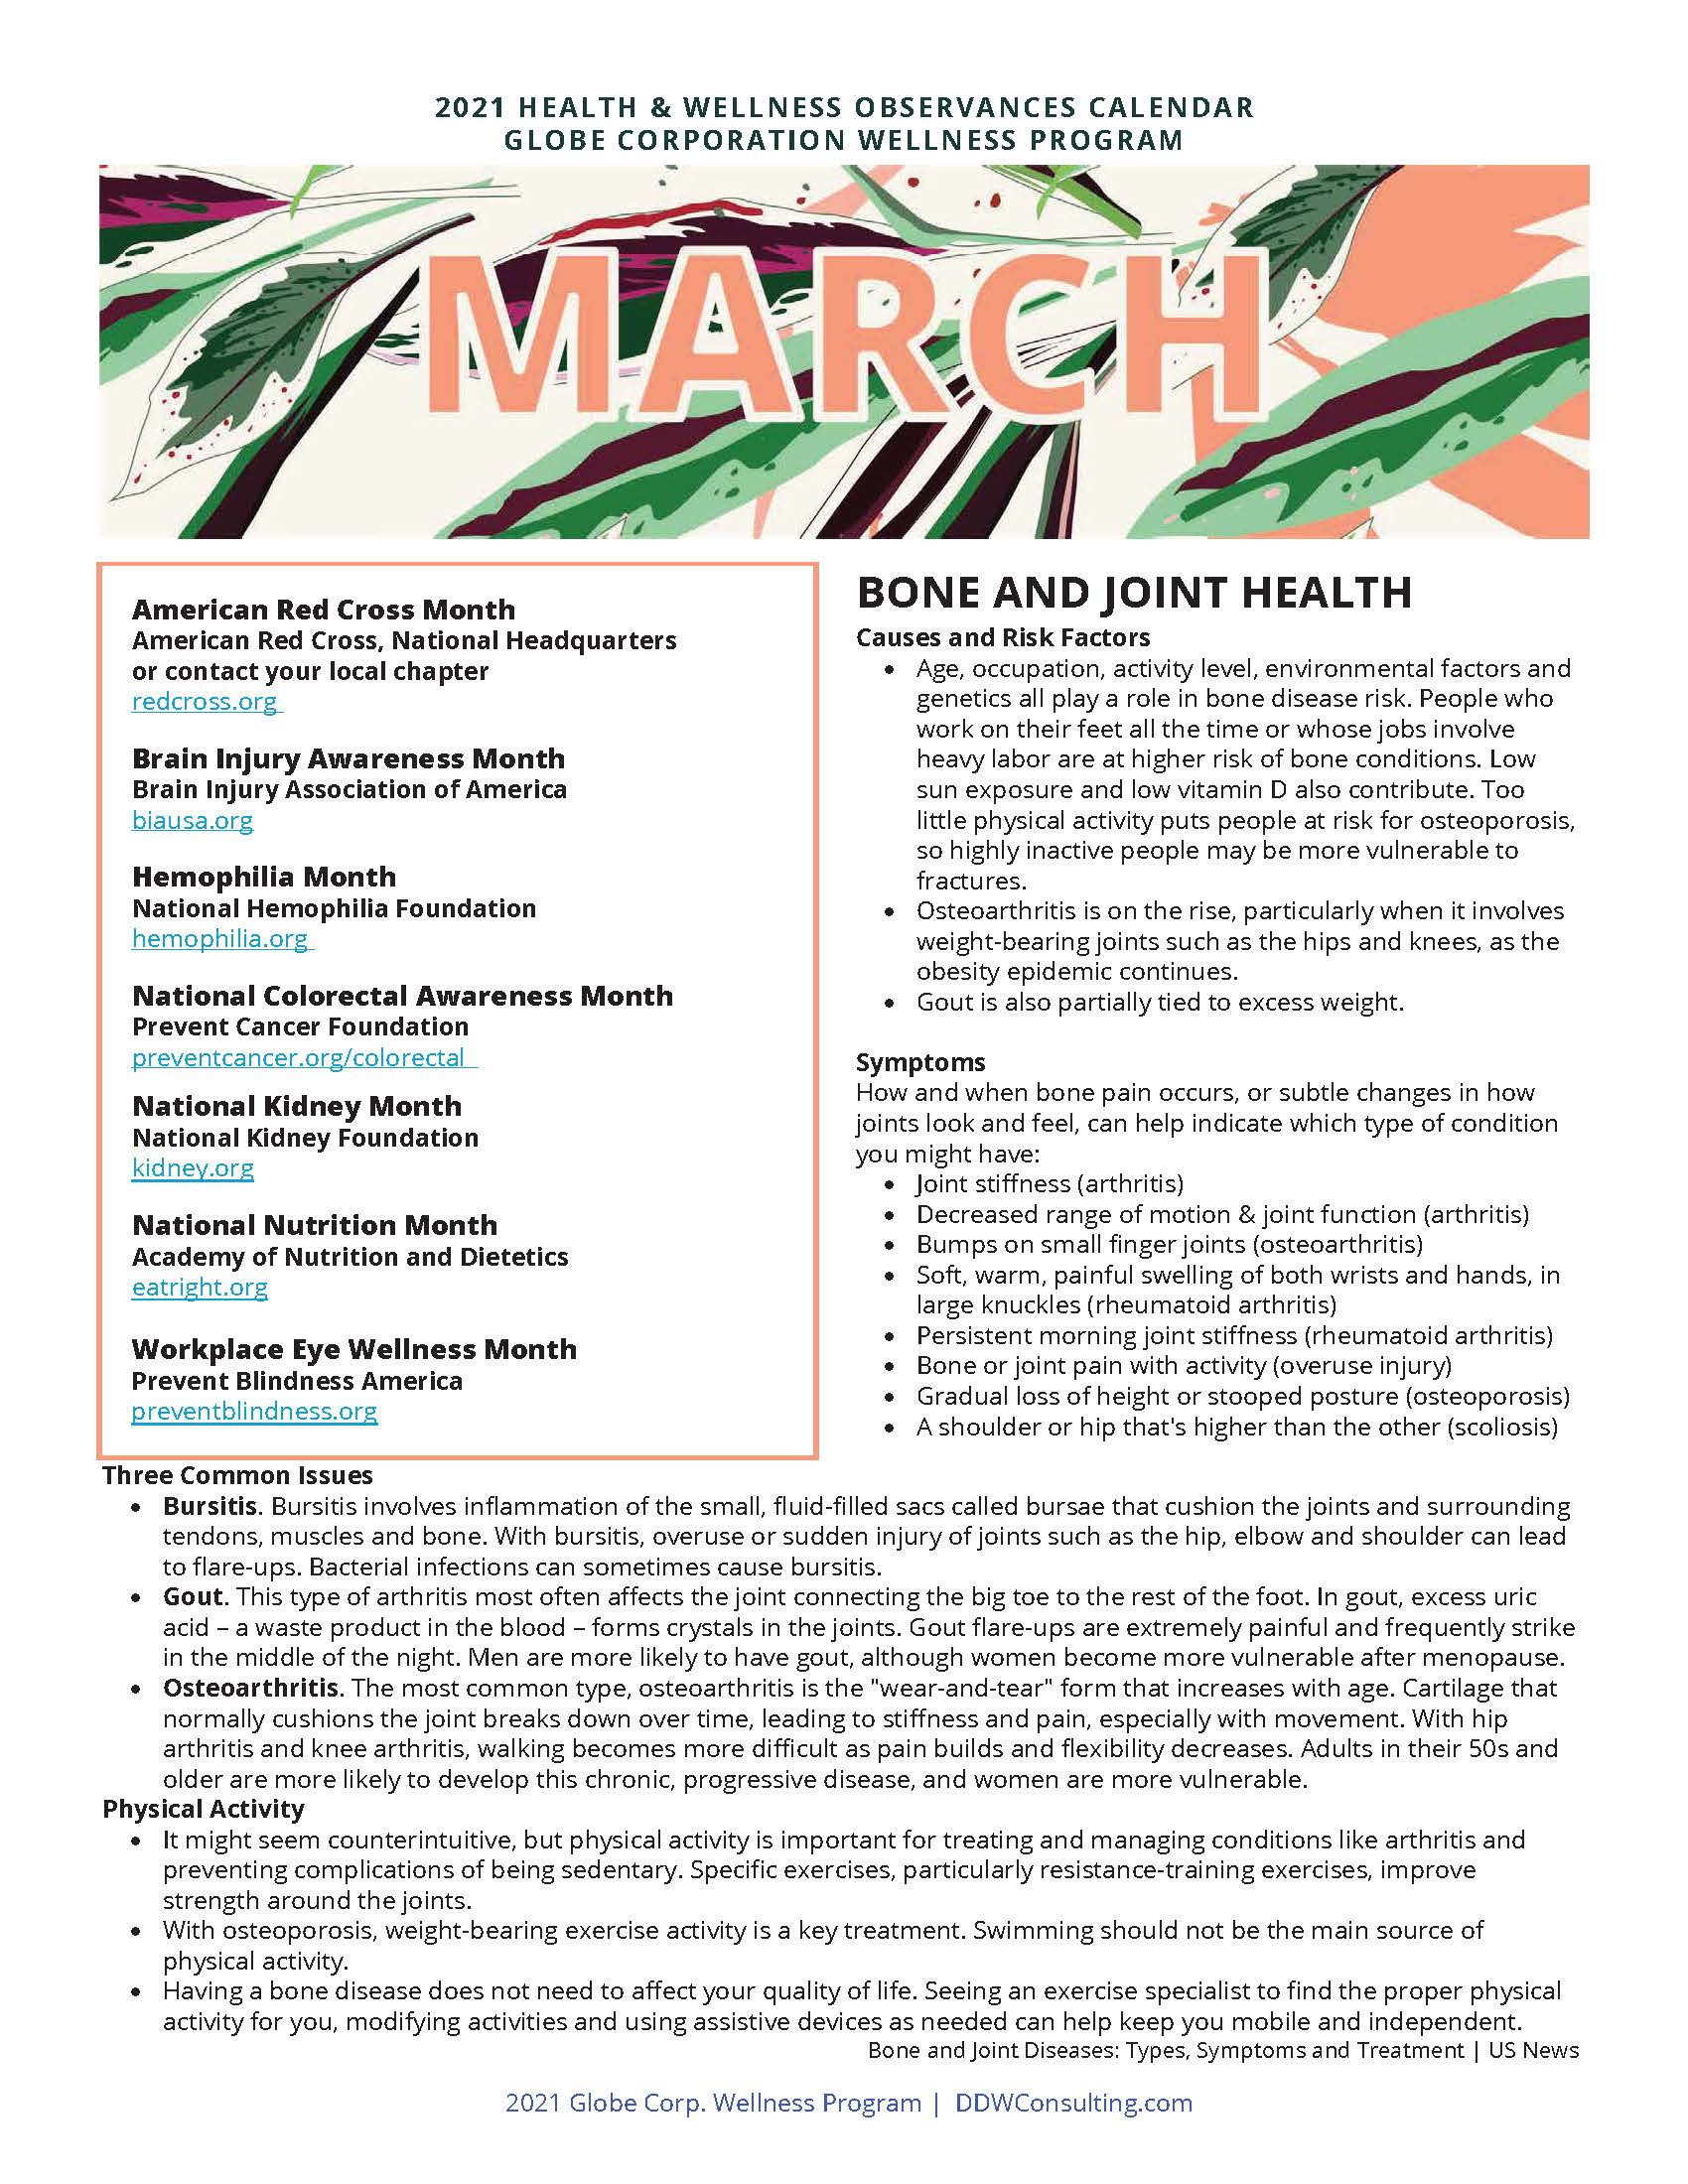 2021 3 March Wellness Education Flyer